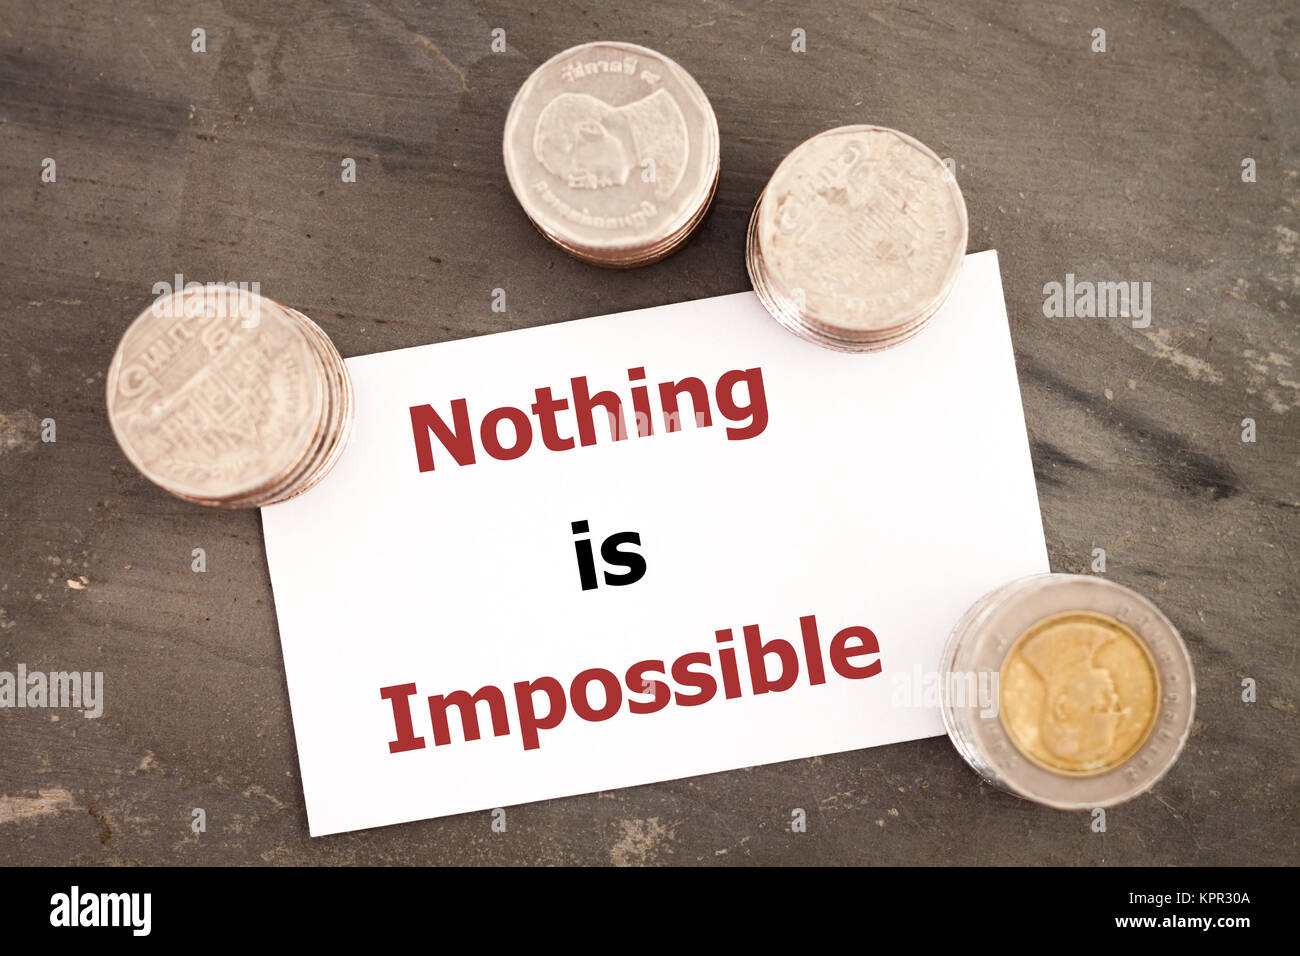 Nothing is impossible inspirational quote - Stock Image